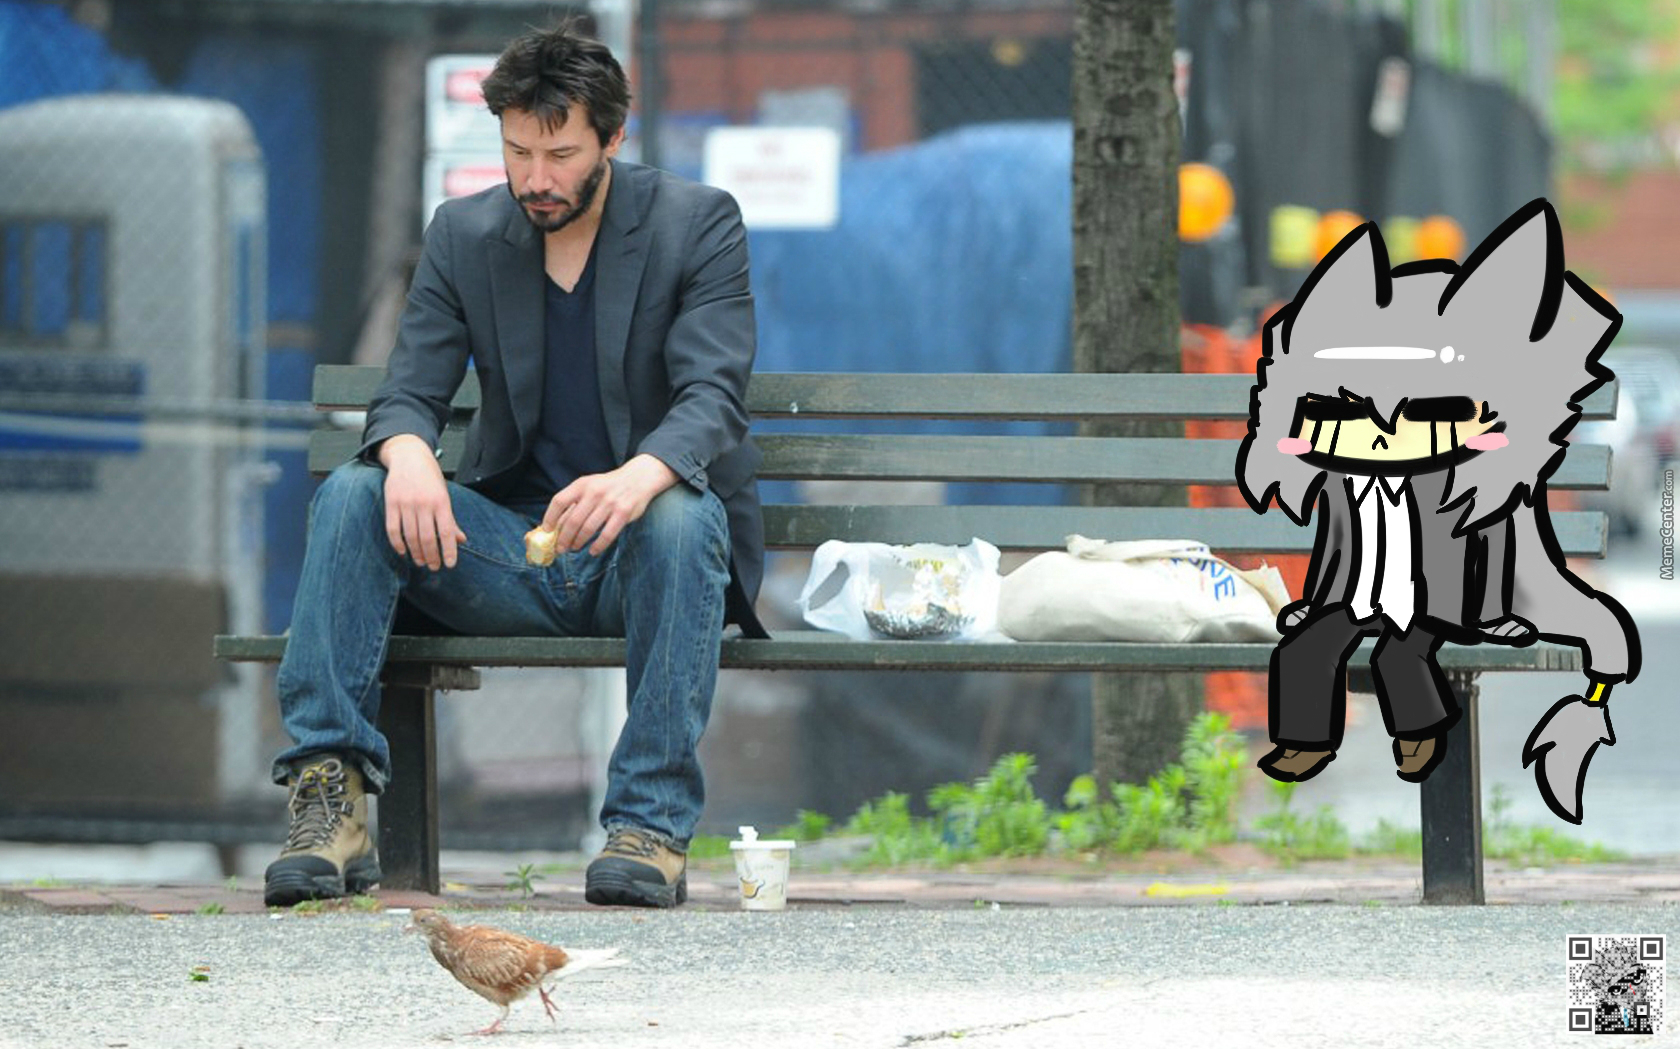 Keanu Reeves And Halo.t. Sad